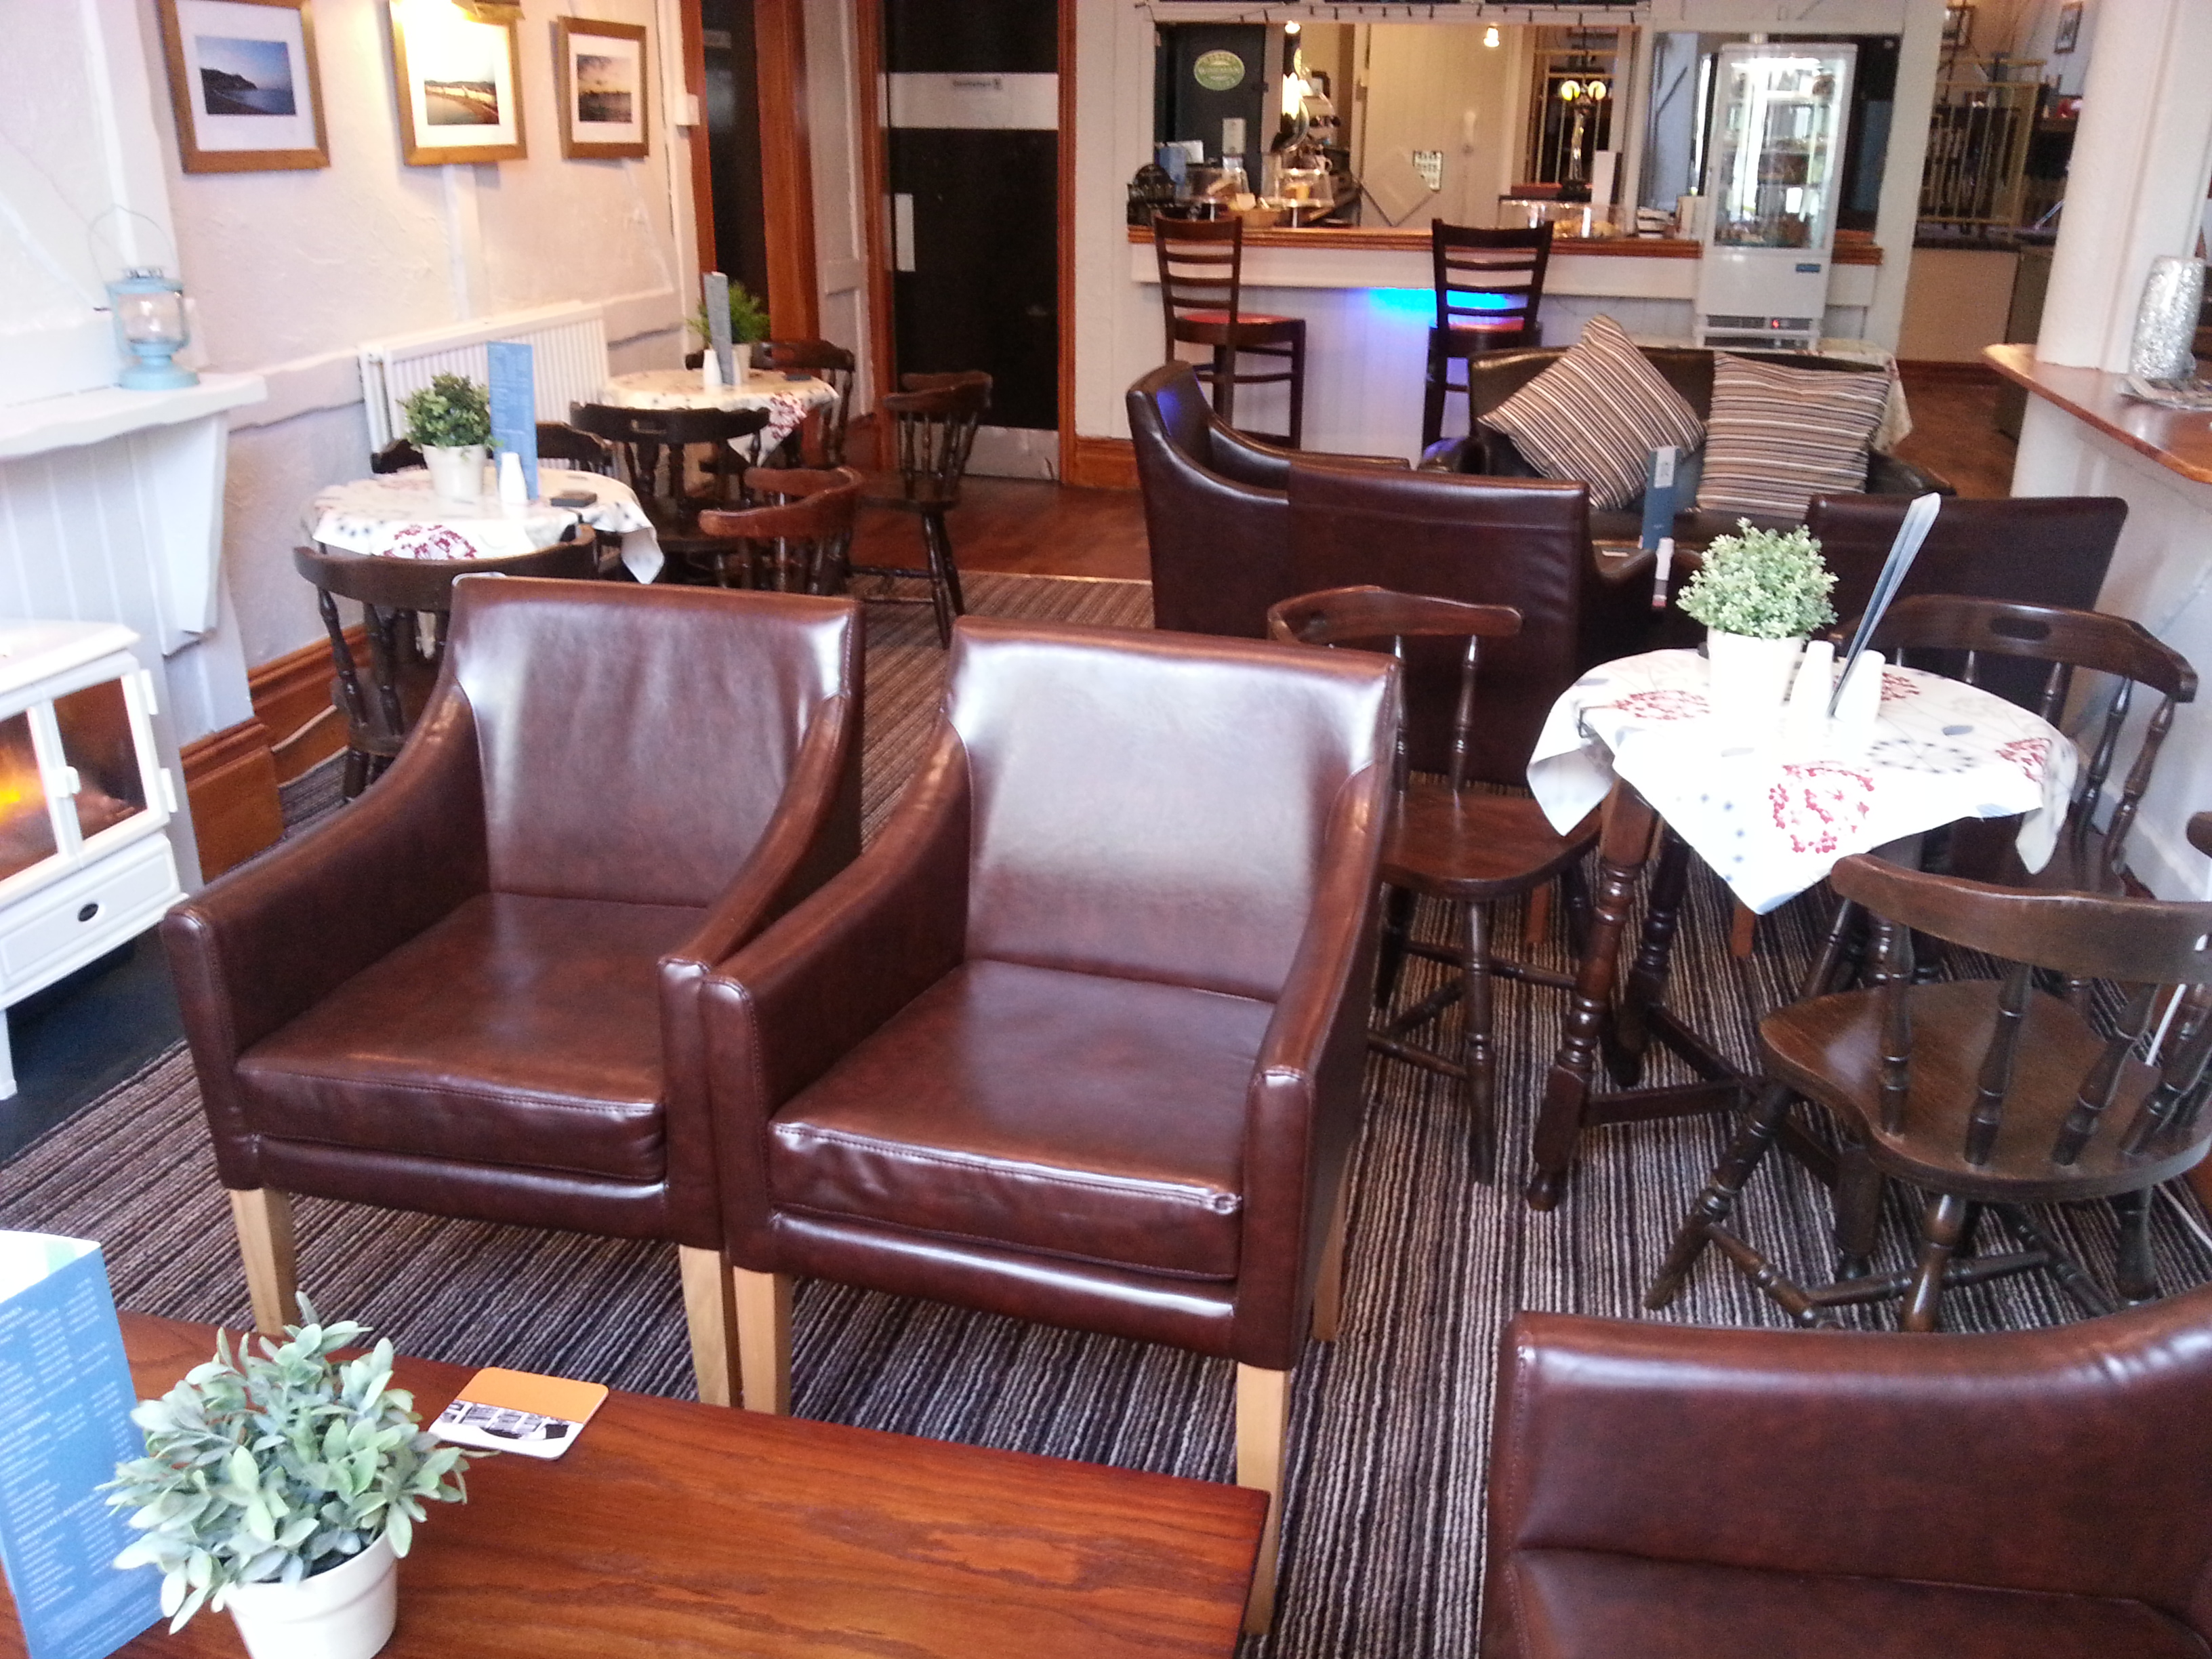 restaurants the farmhouse cafe in conwy with cuisine british